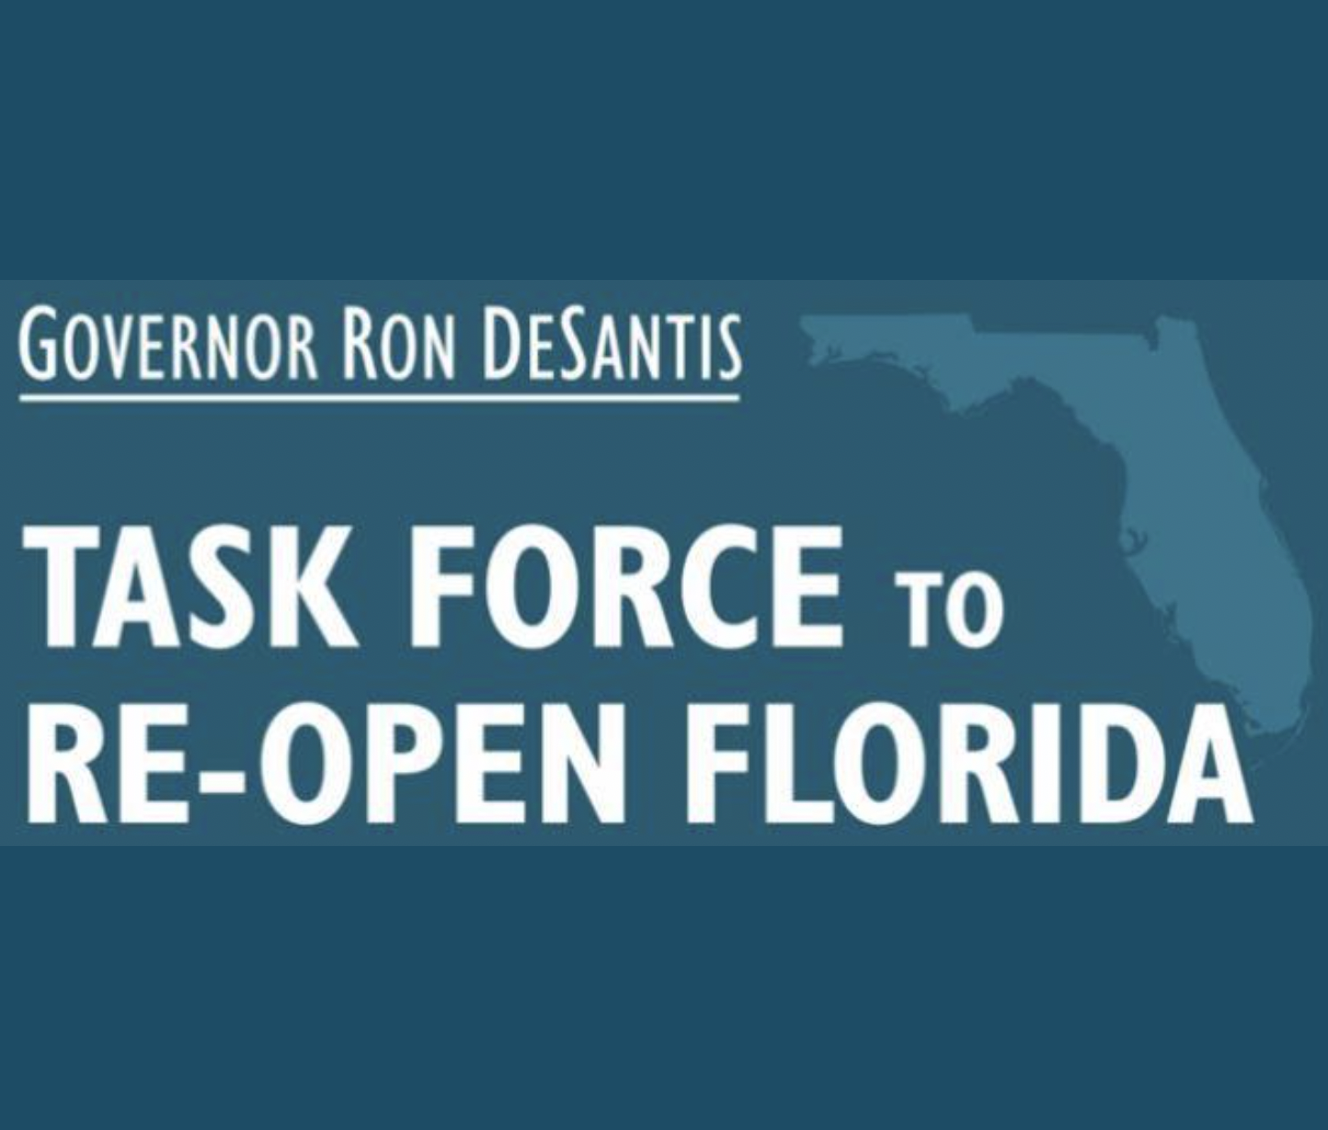 Governor Ron DeSantis Task Force to Re-Open Florida 01